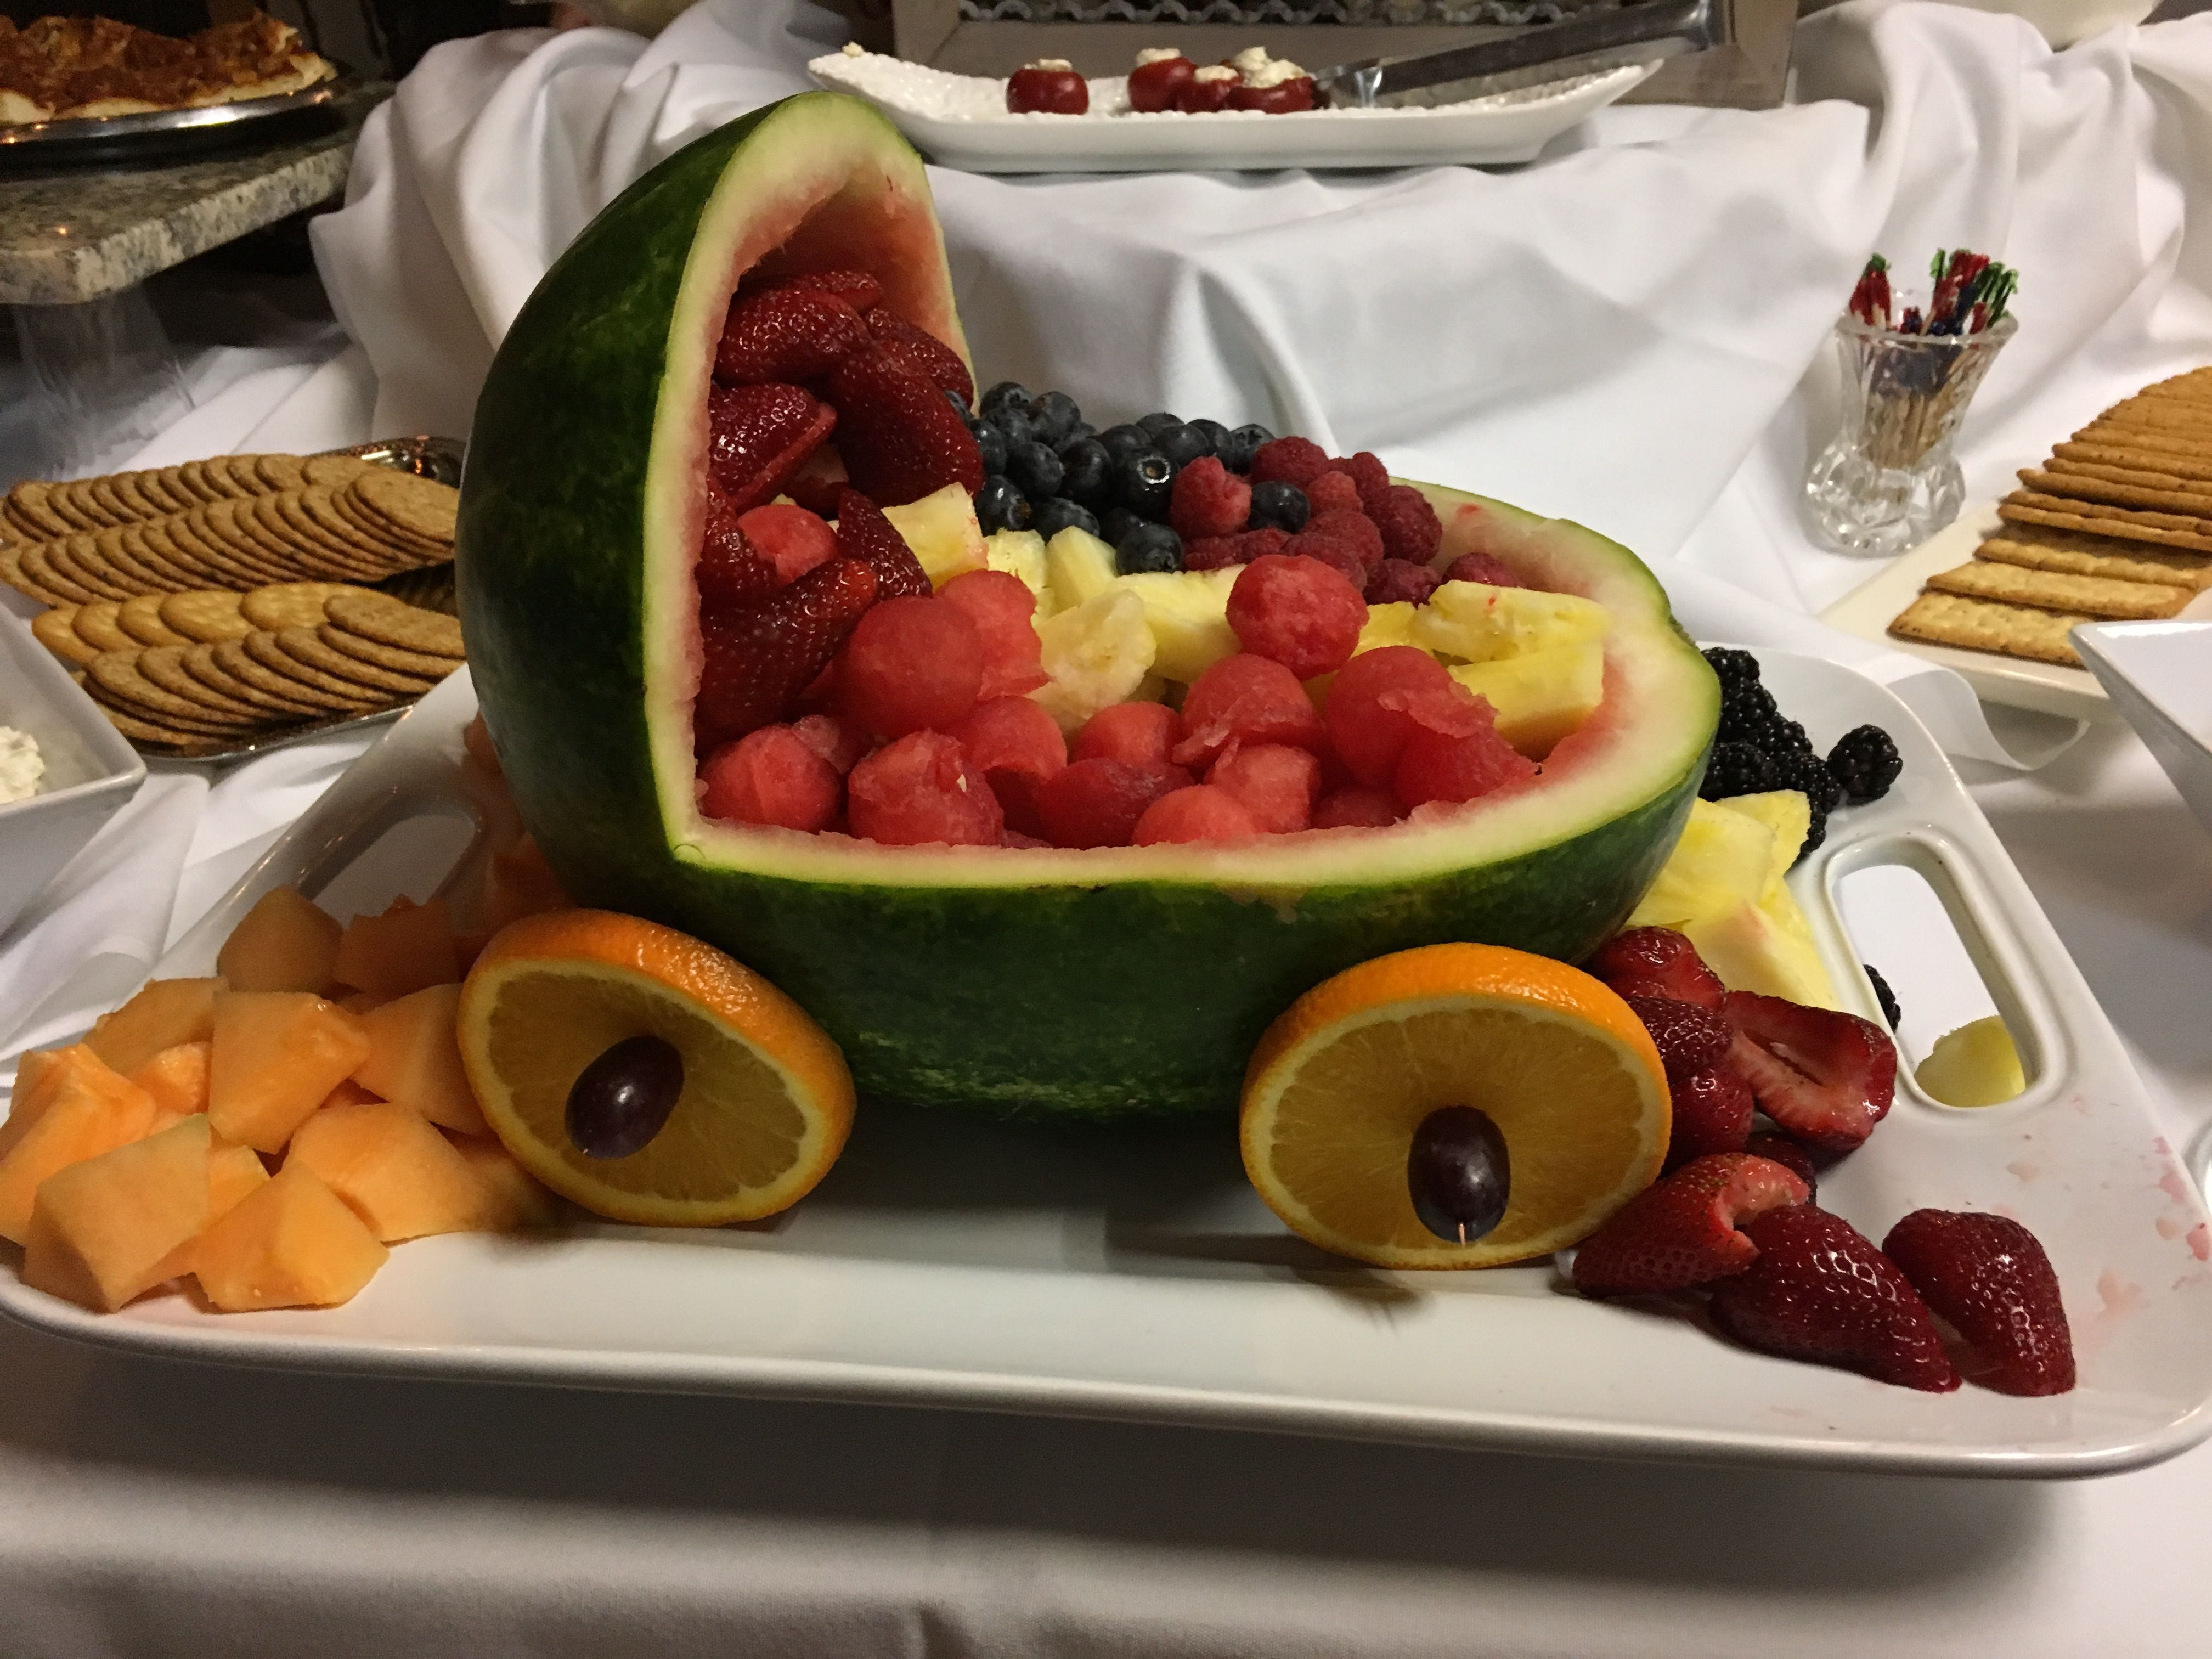 Baby Shower Catering Decoration Watermelon Baby Carriage Fruit Salad